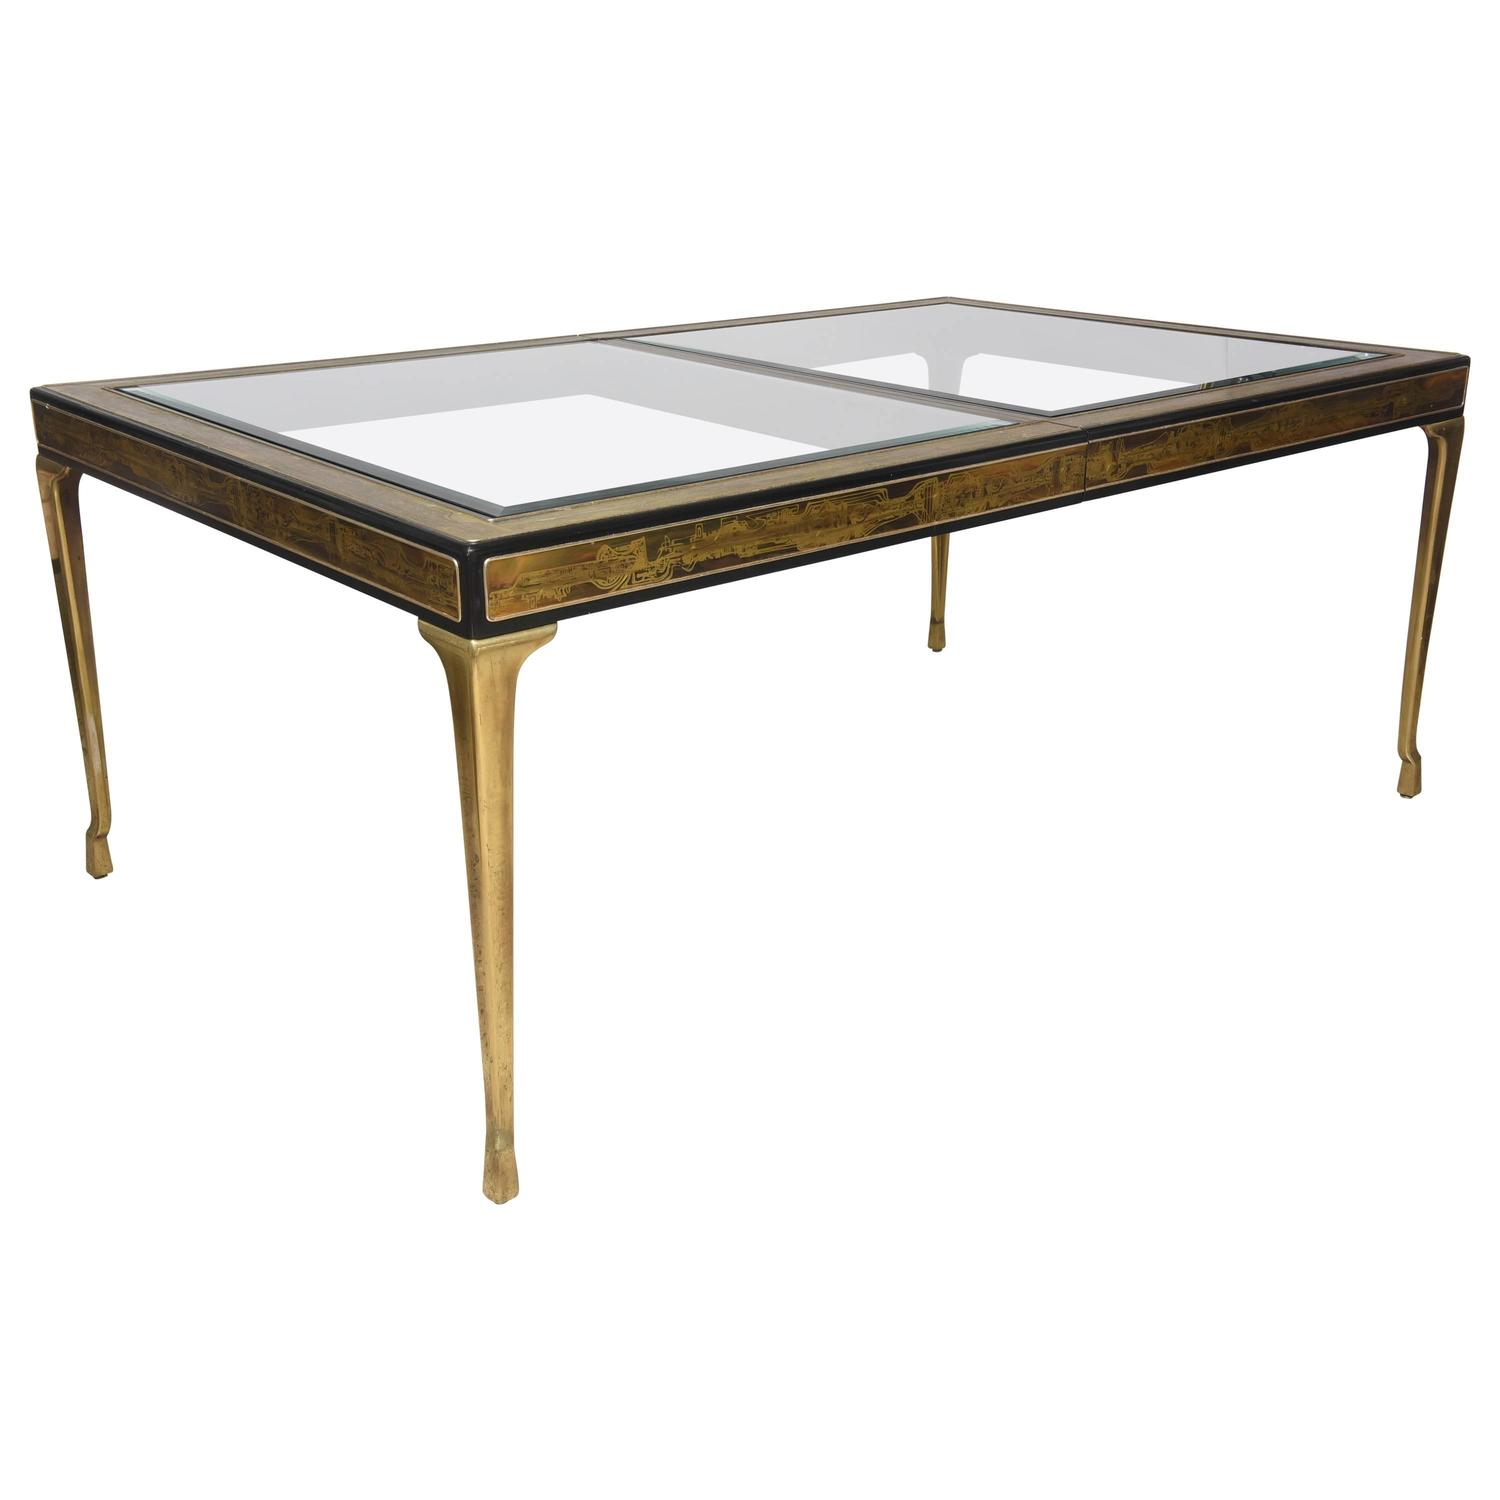 Rectangular dining table brass and glass by bernhard rohne for Rectangular glass dining table